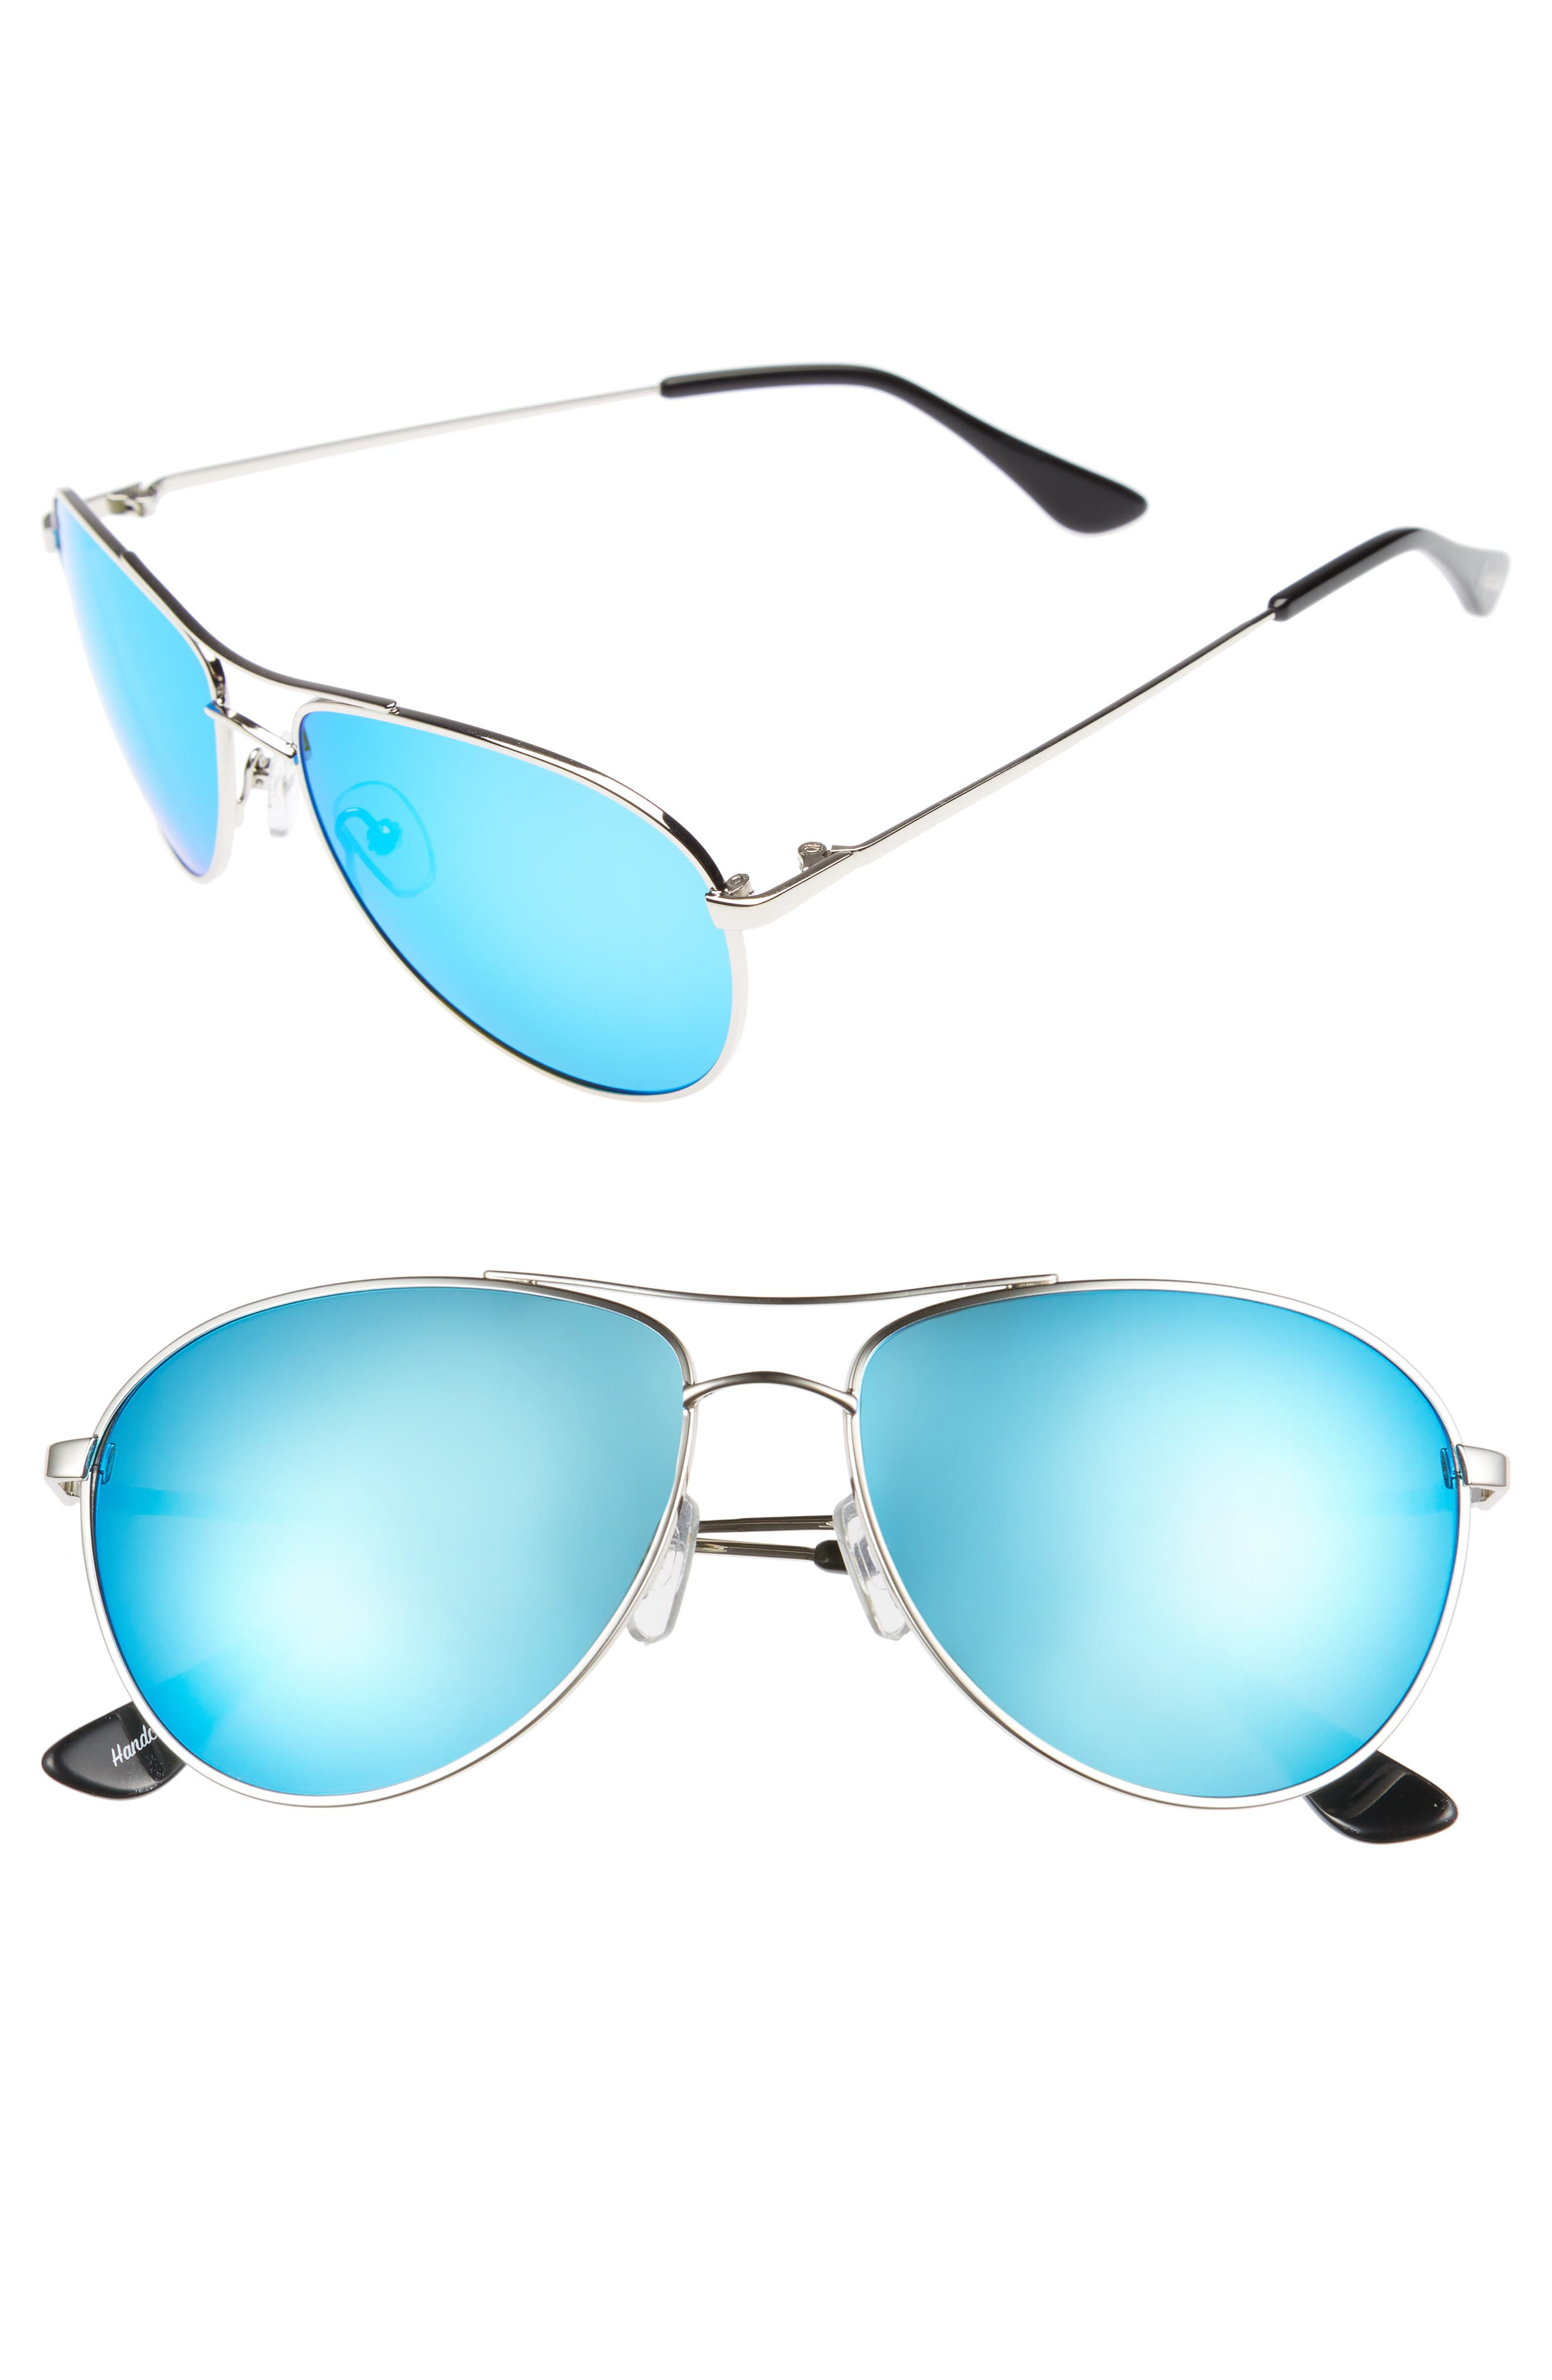 Orville 58mm Mirrored Aviator Sunglasses,                             Main thumbnail 1, color,                             Silver/ Blue Mirror